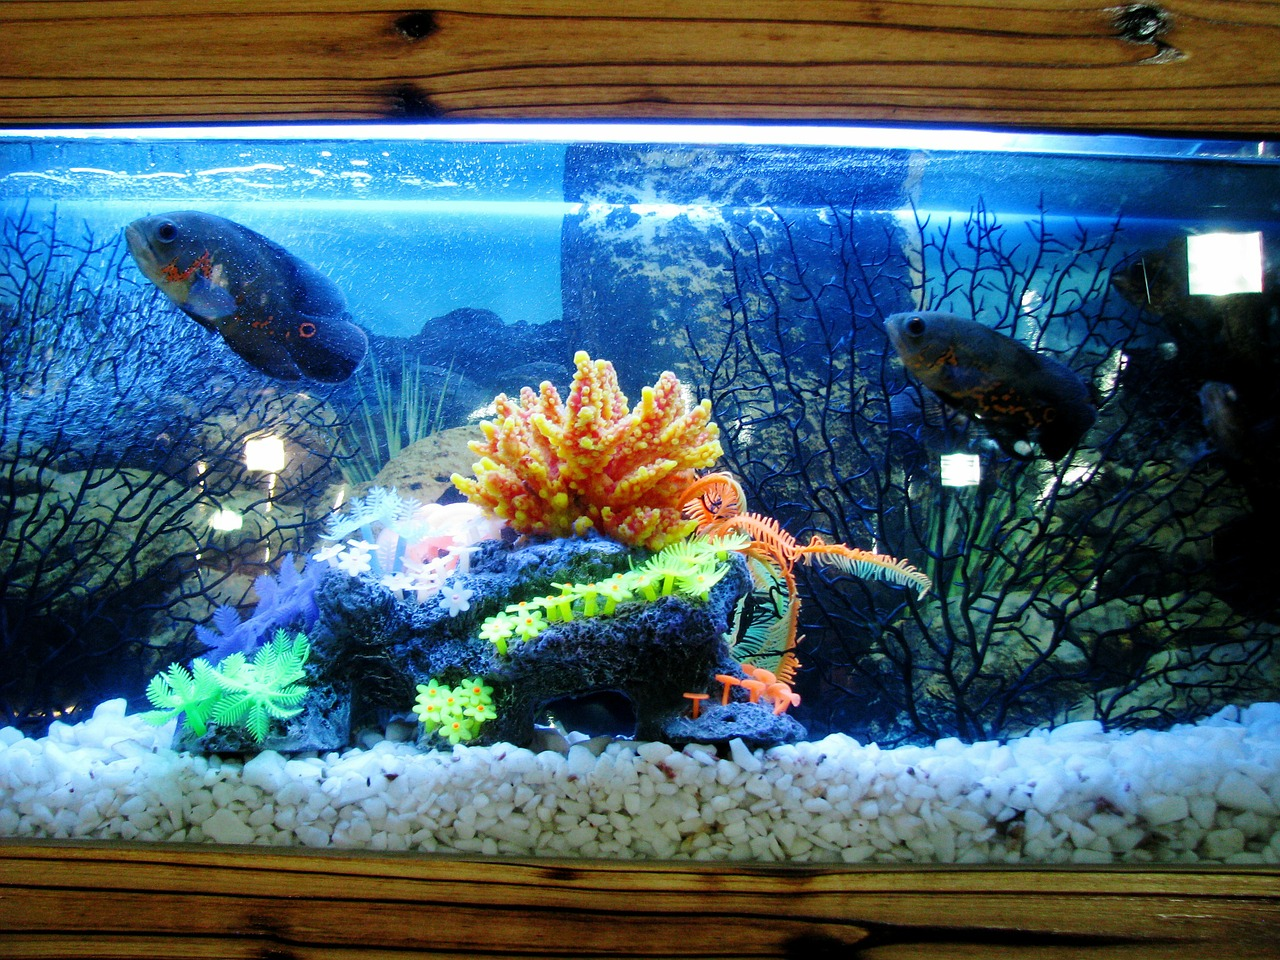 Start an Indoor Fish Farming Business from Home